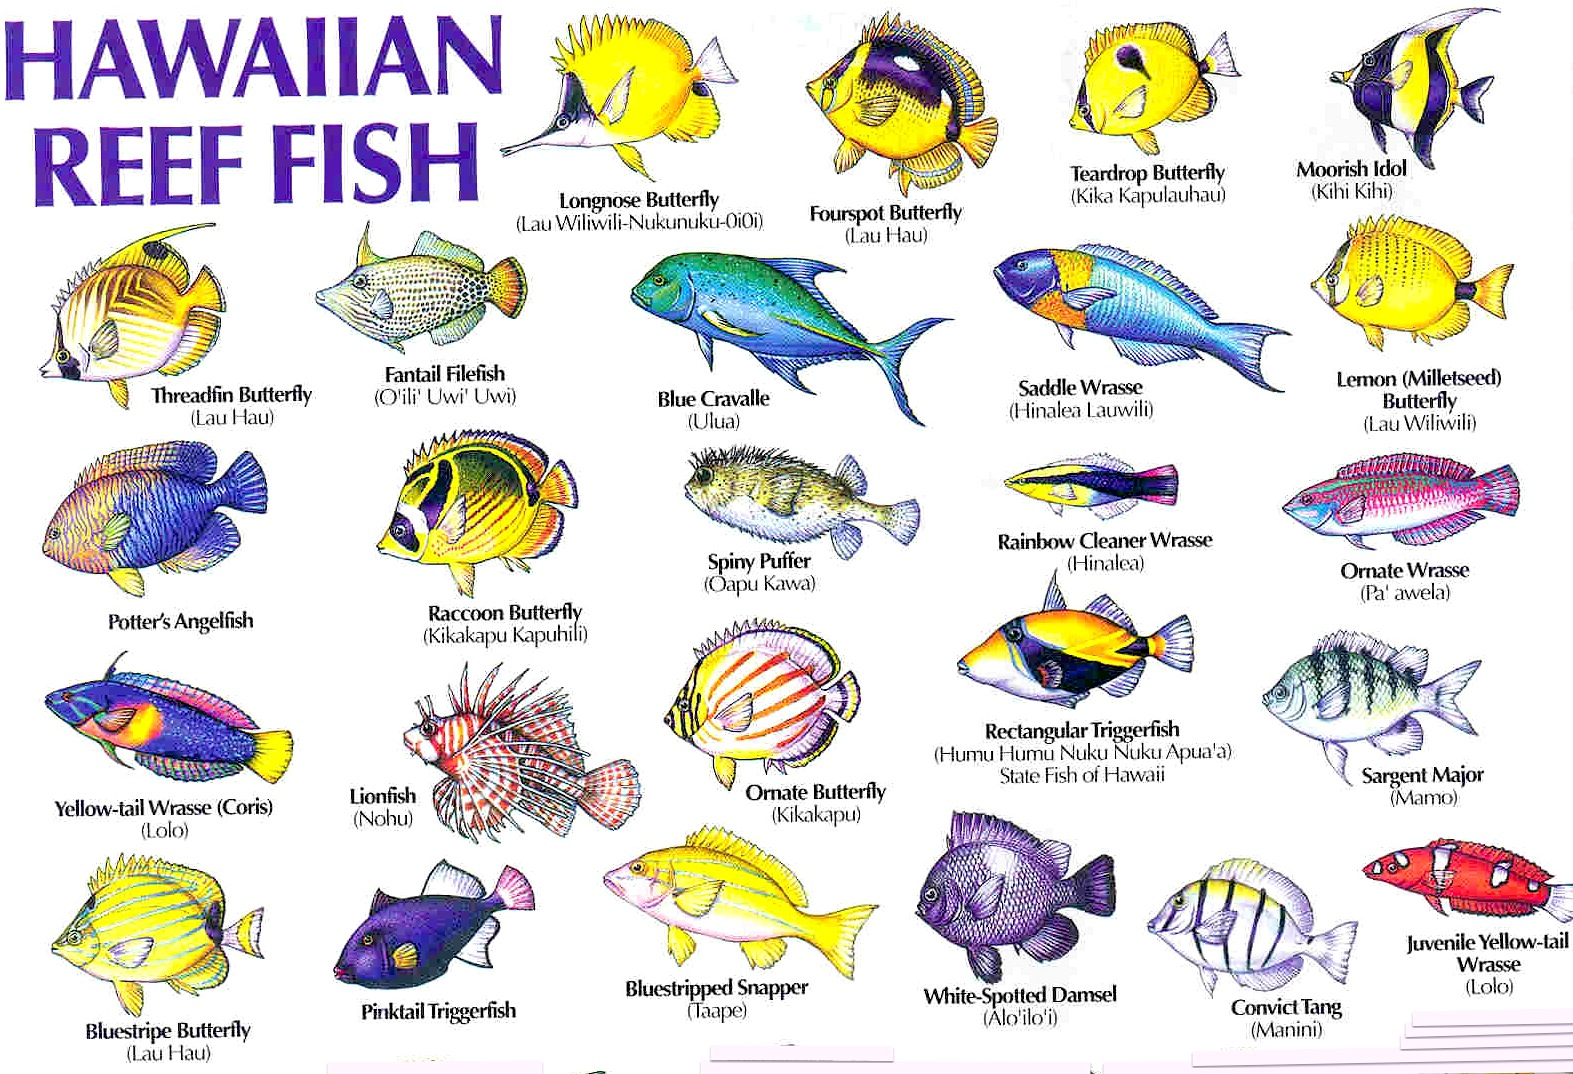 aloha joe in hawaii a visual guide to hawaii 39 s reef fish